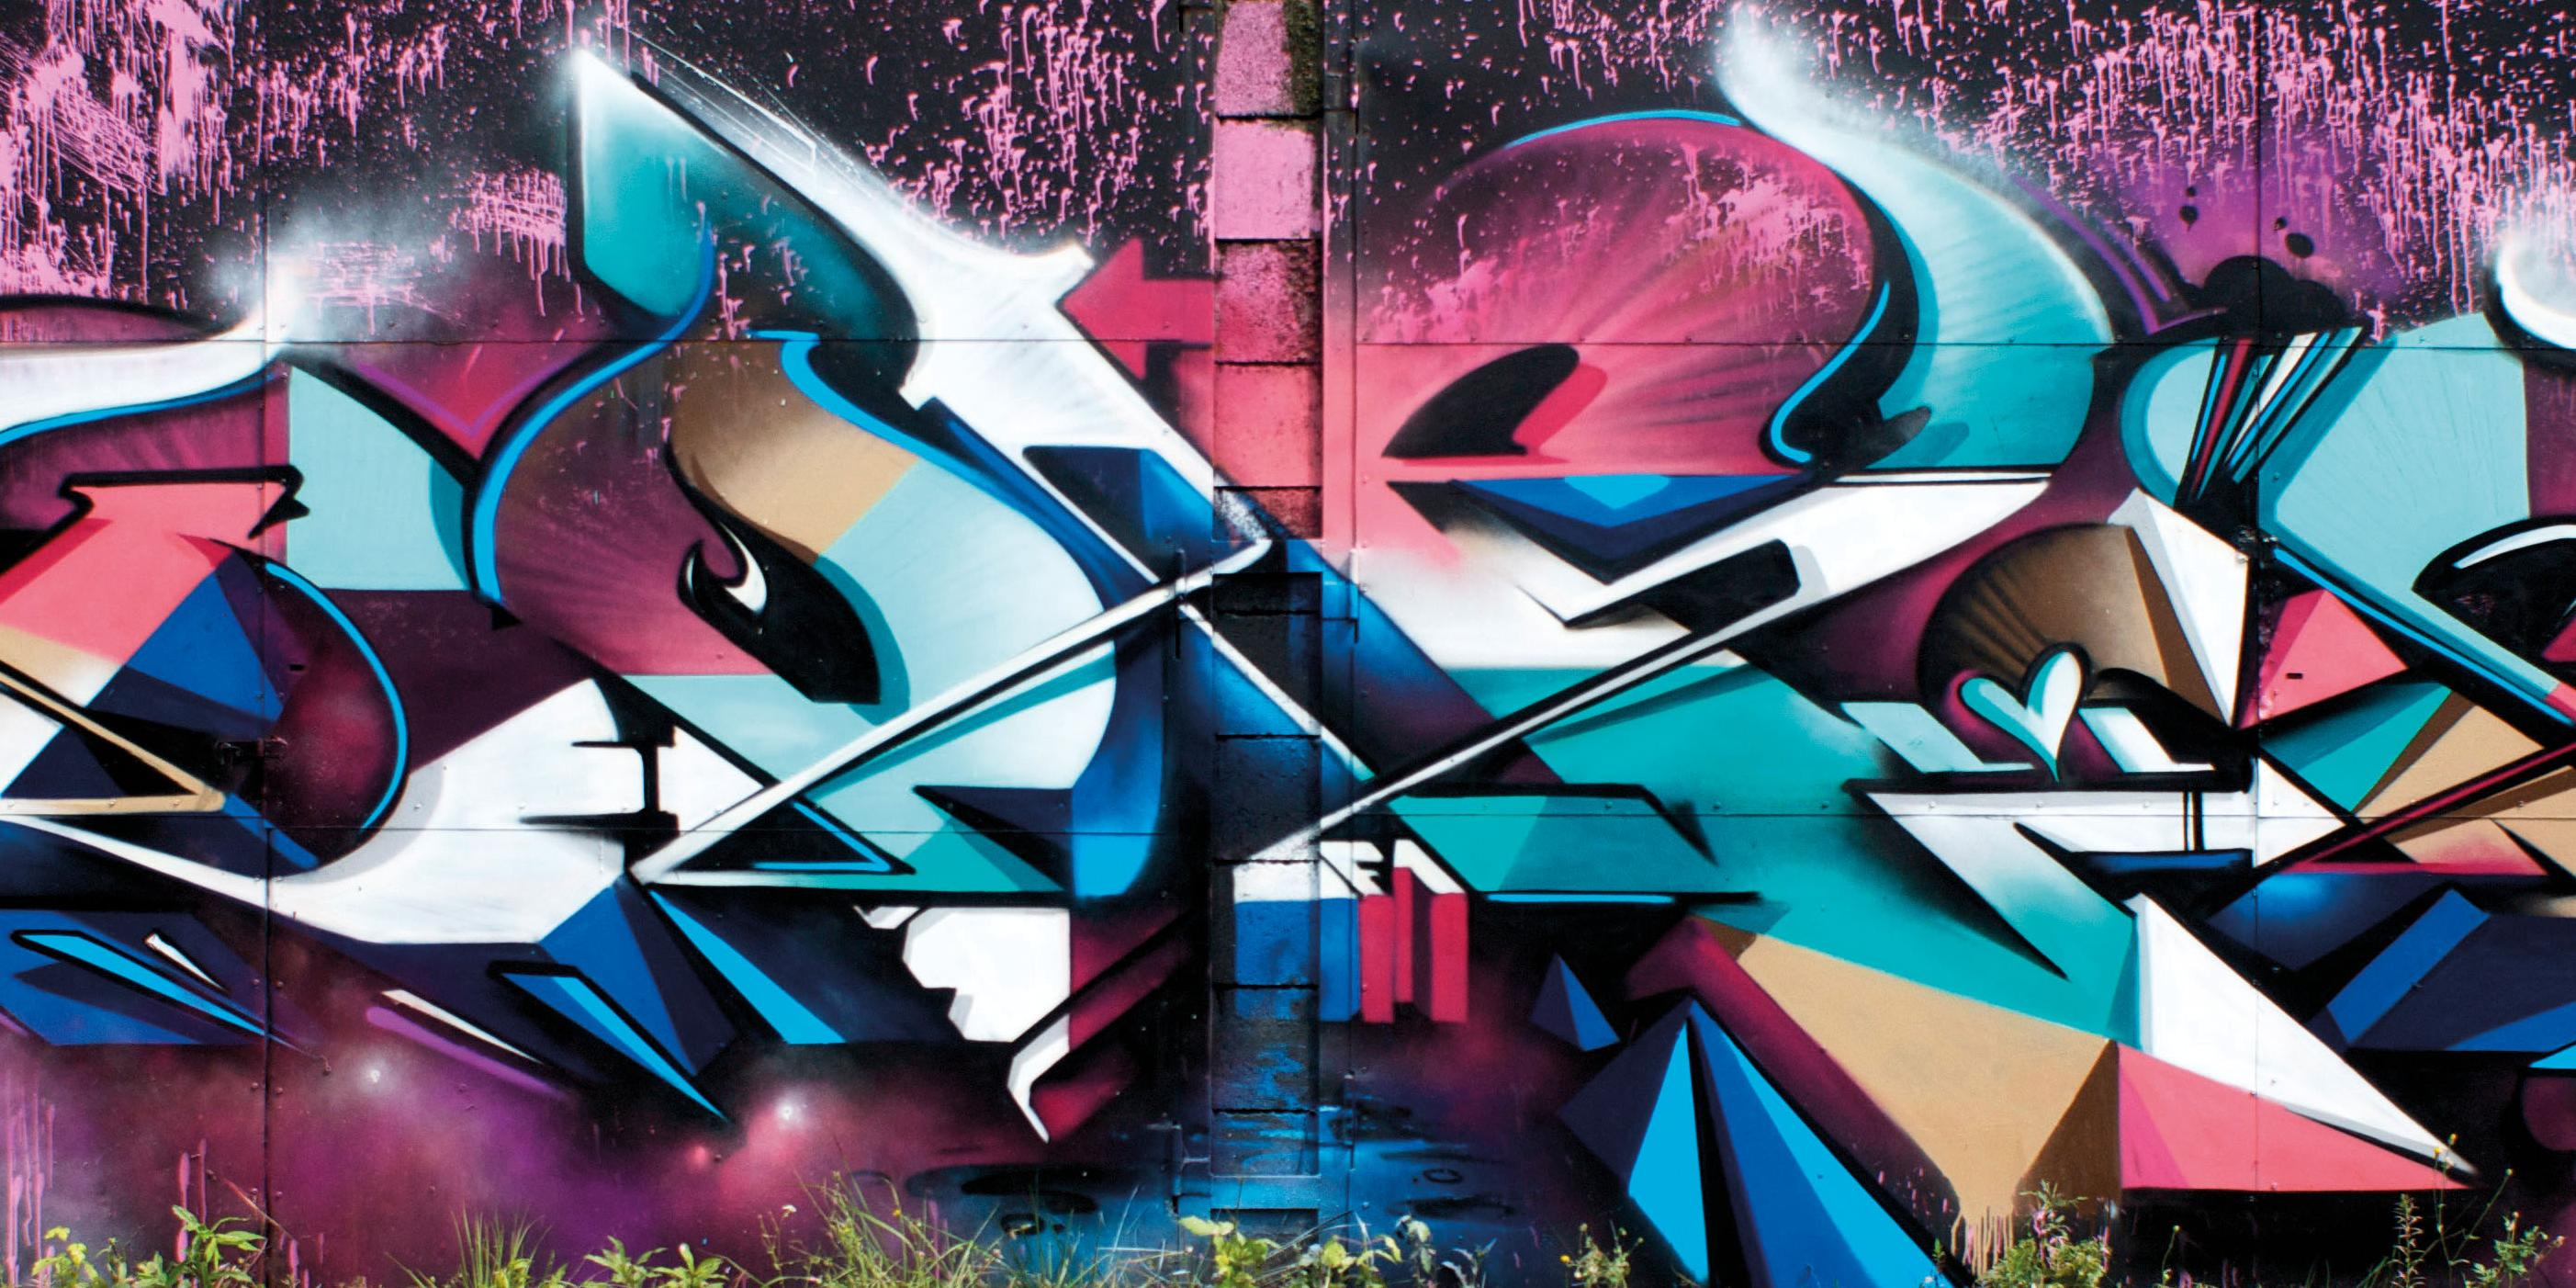 A work by Does - Miskolc hungary detail mural